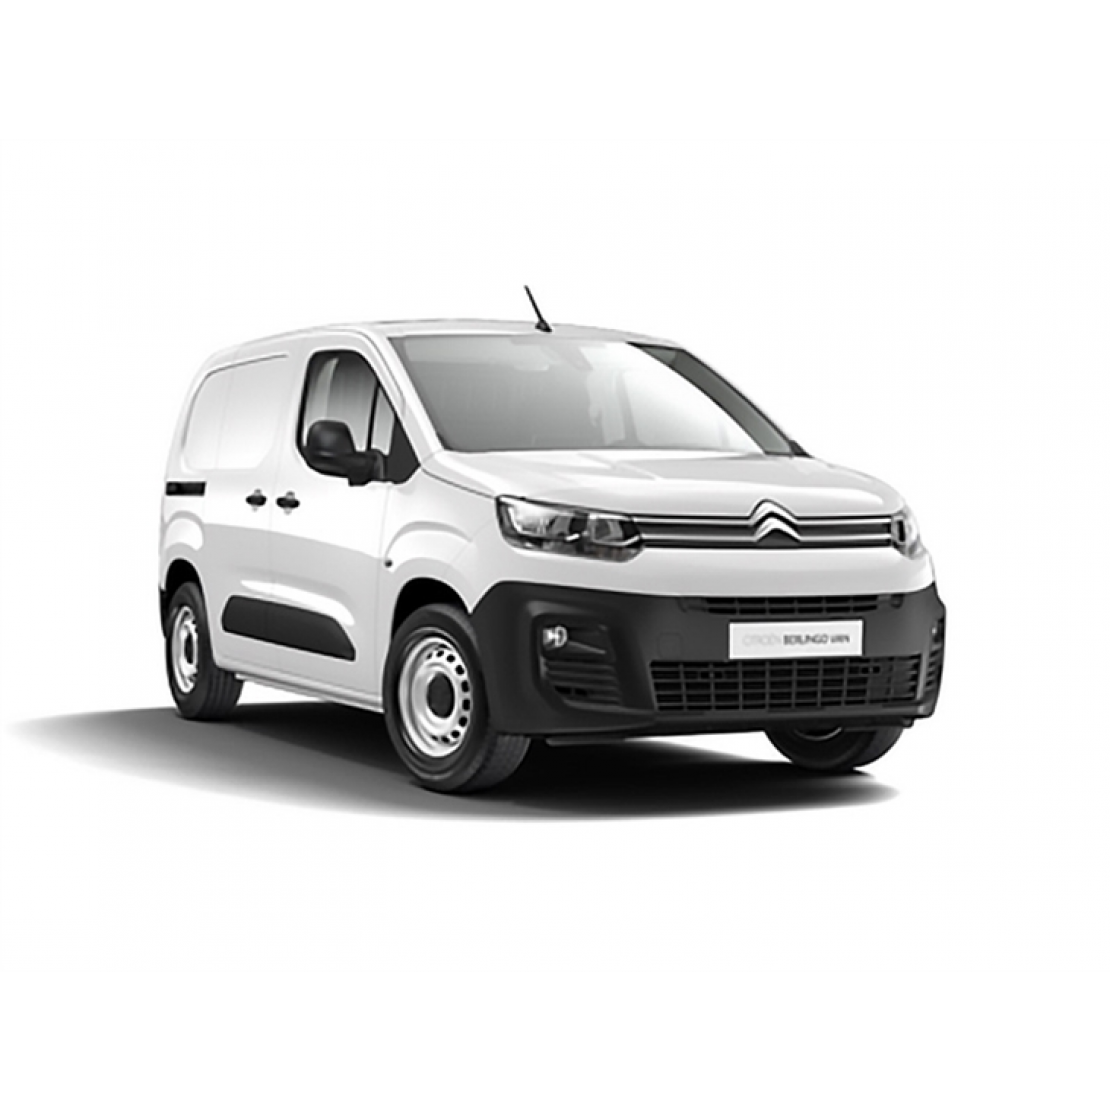 Citroen Berlingo Blue HDI 75 L1 650 Enterprise